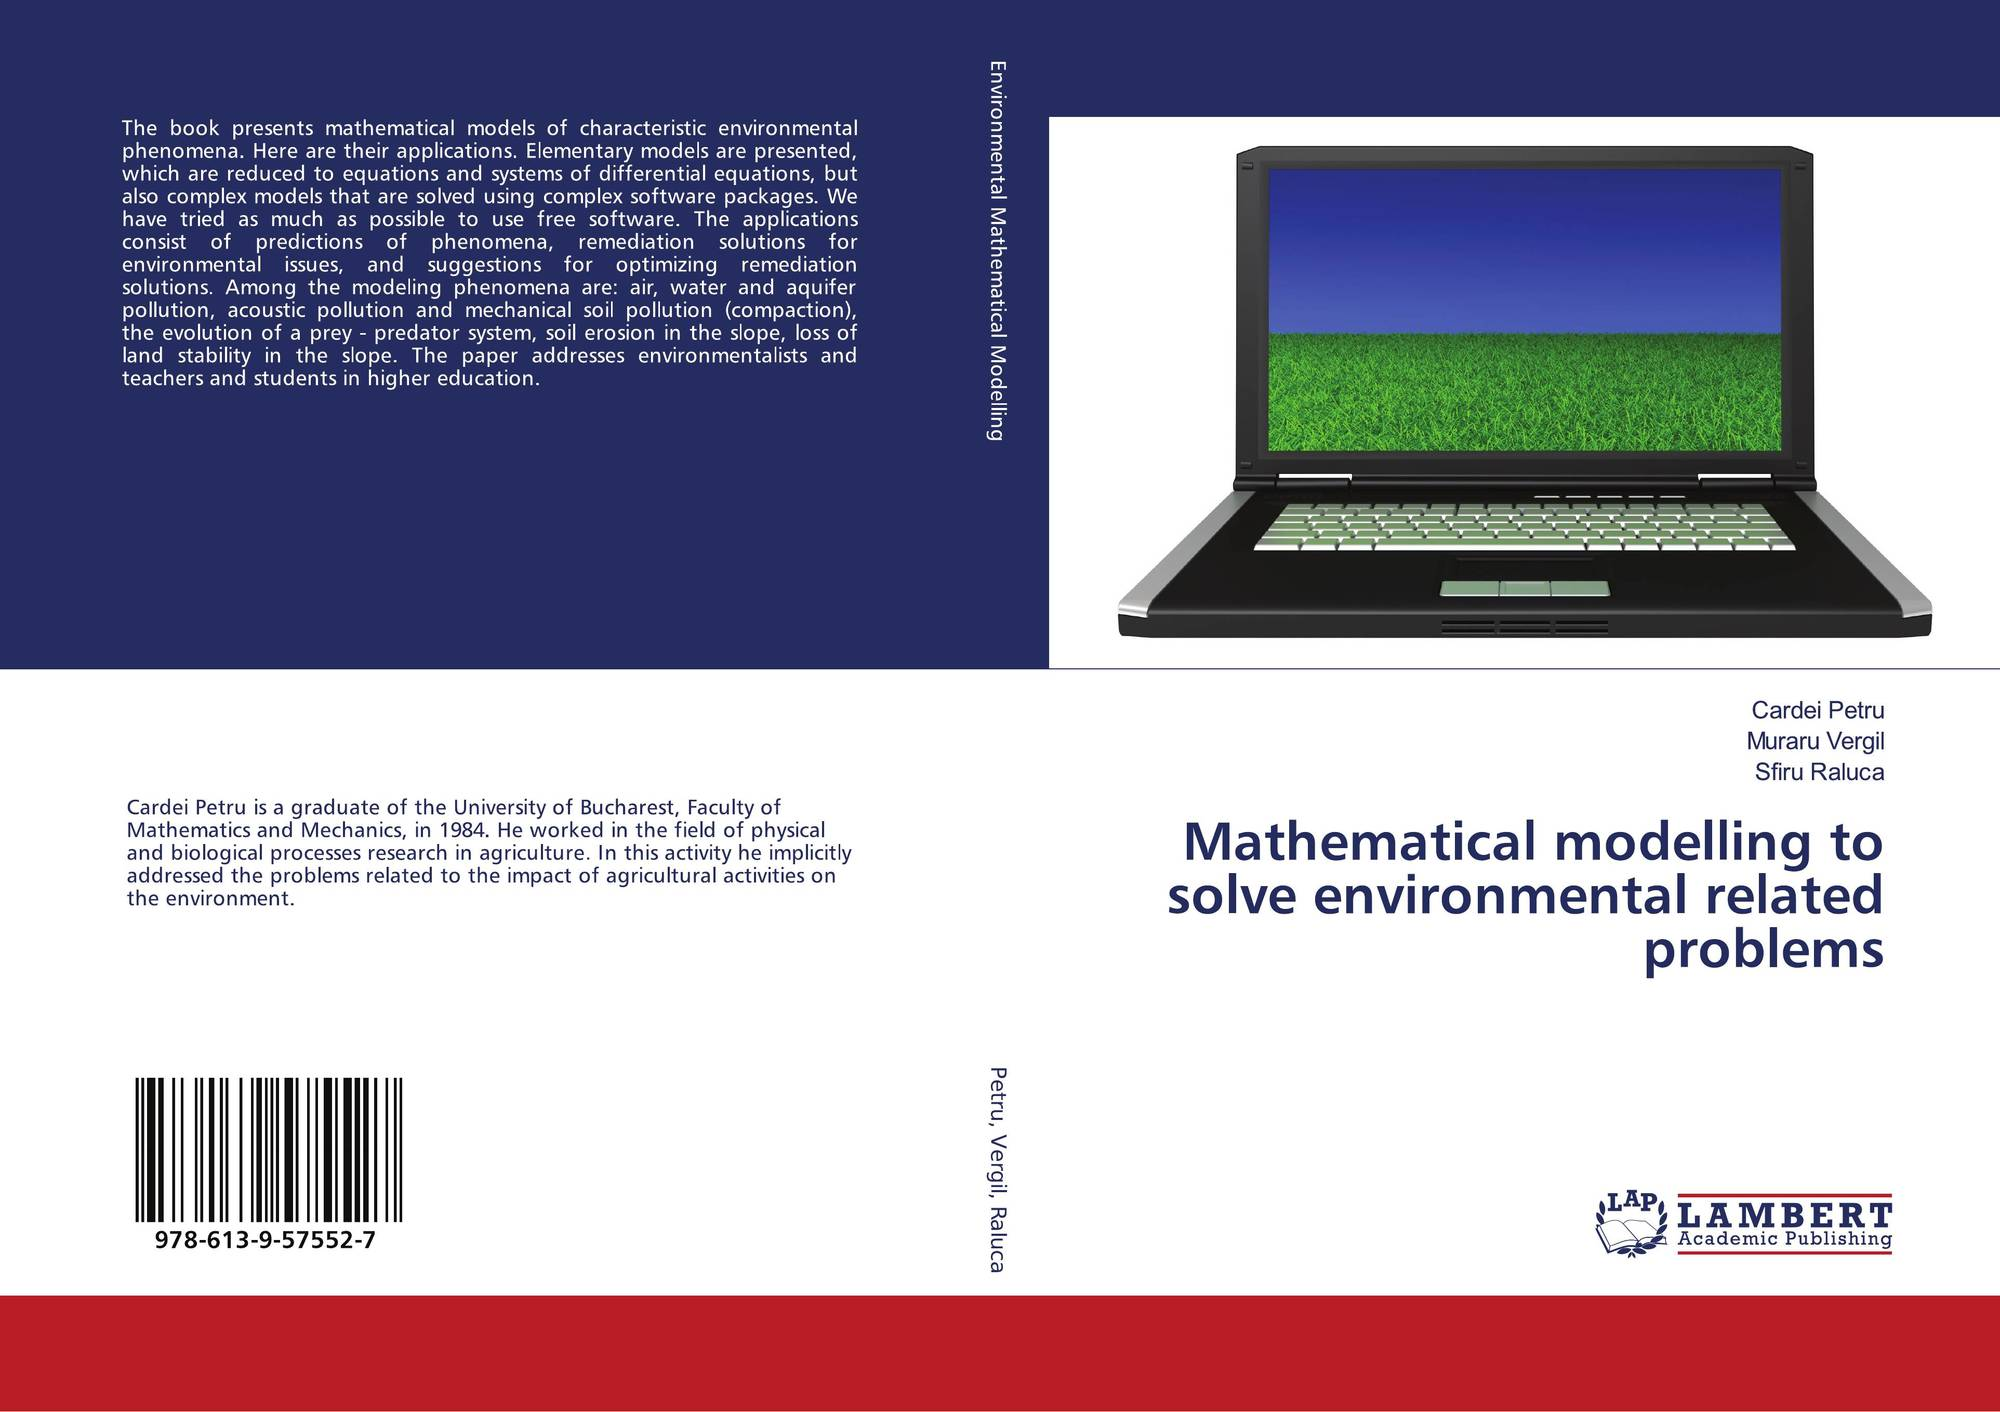 Mathematical modelling to solve environmental related